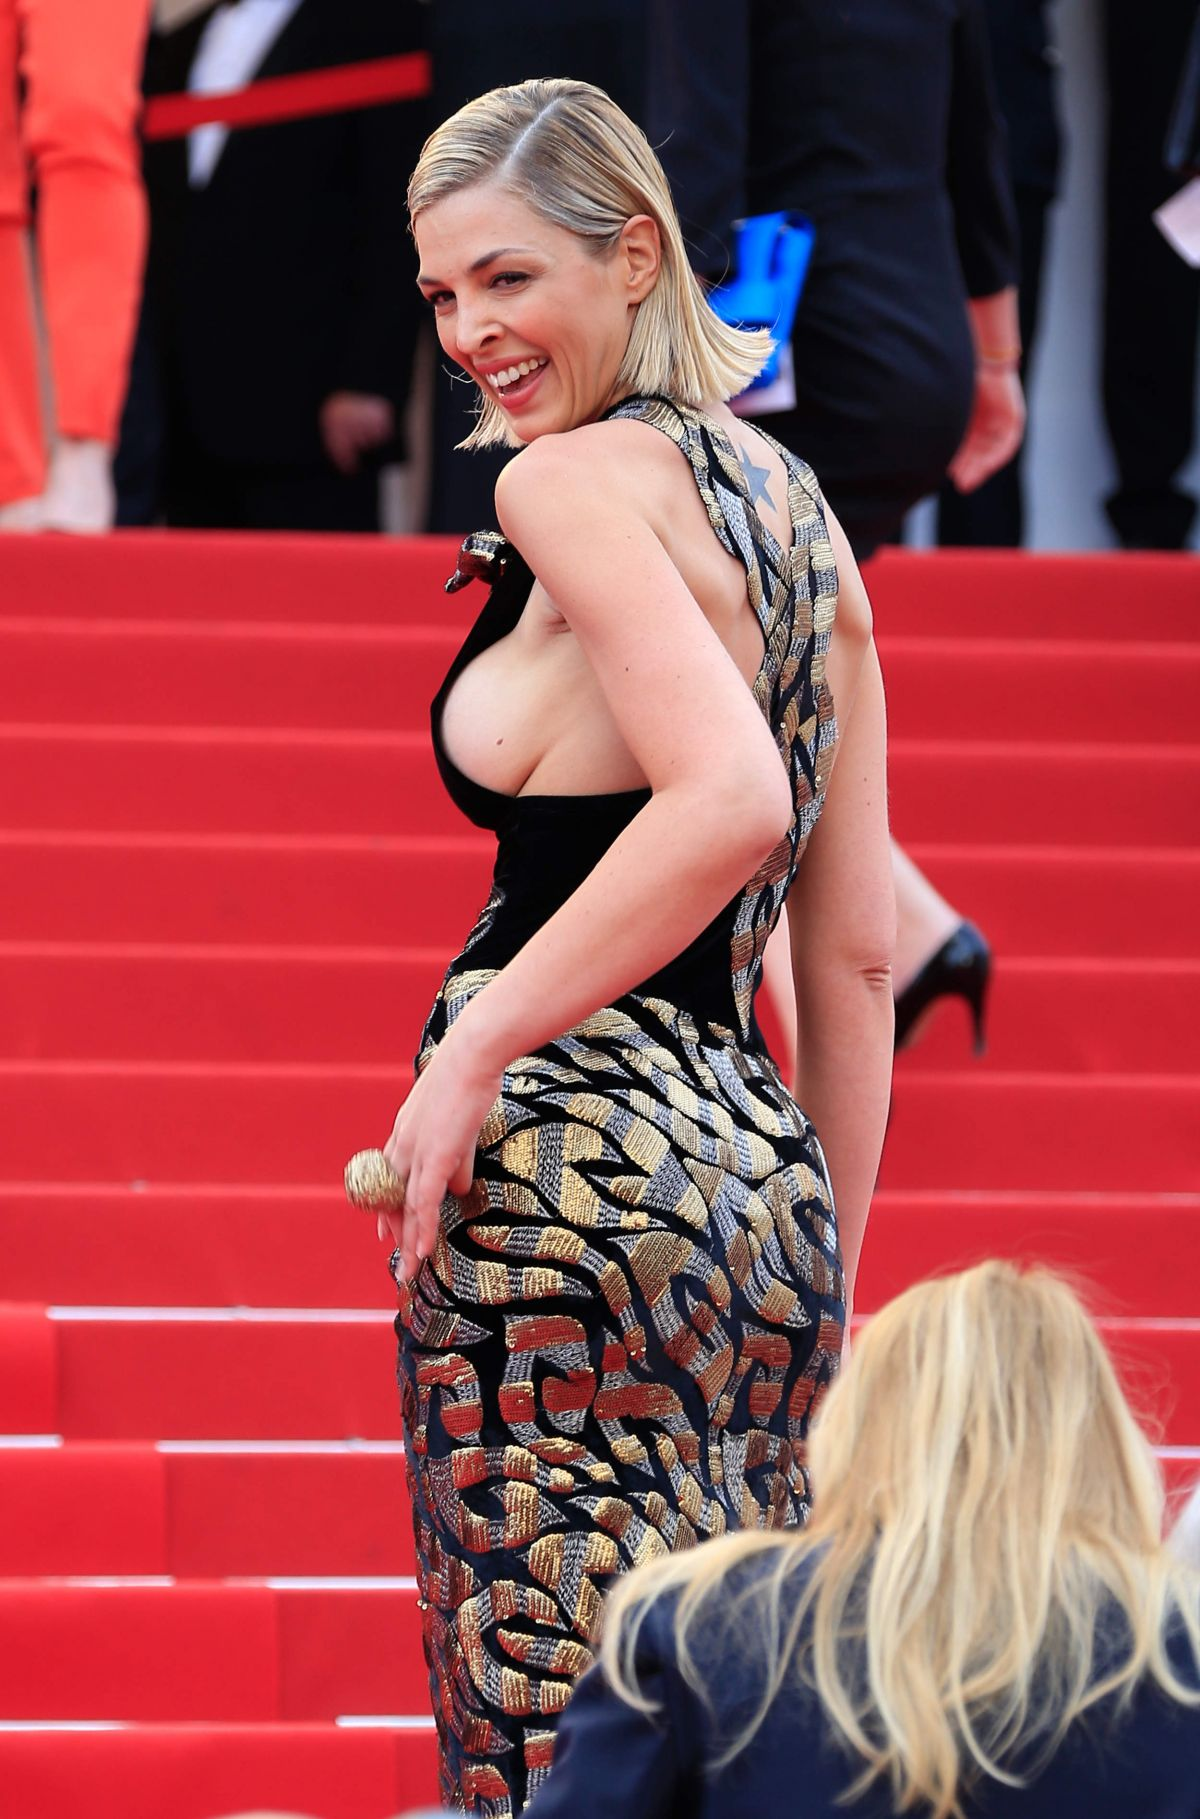 TheFappening Eleonore Boccara naked (48 photo), Ass, Hot, Twitter, braless 2020